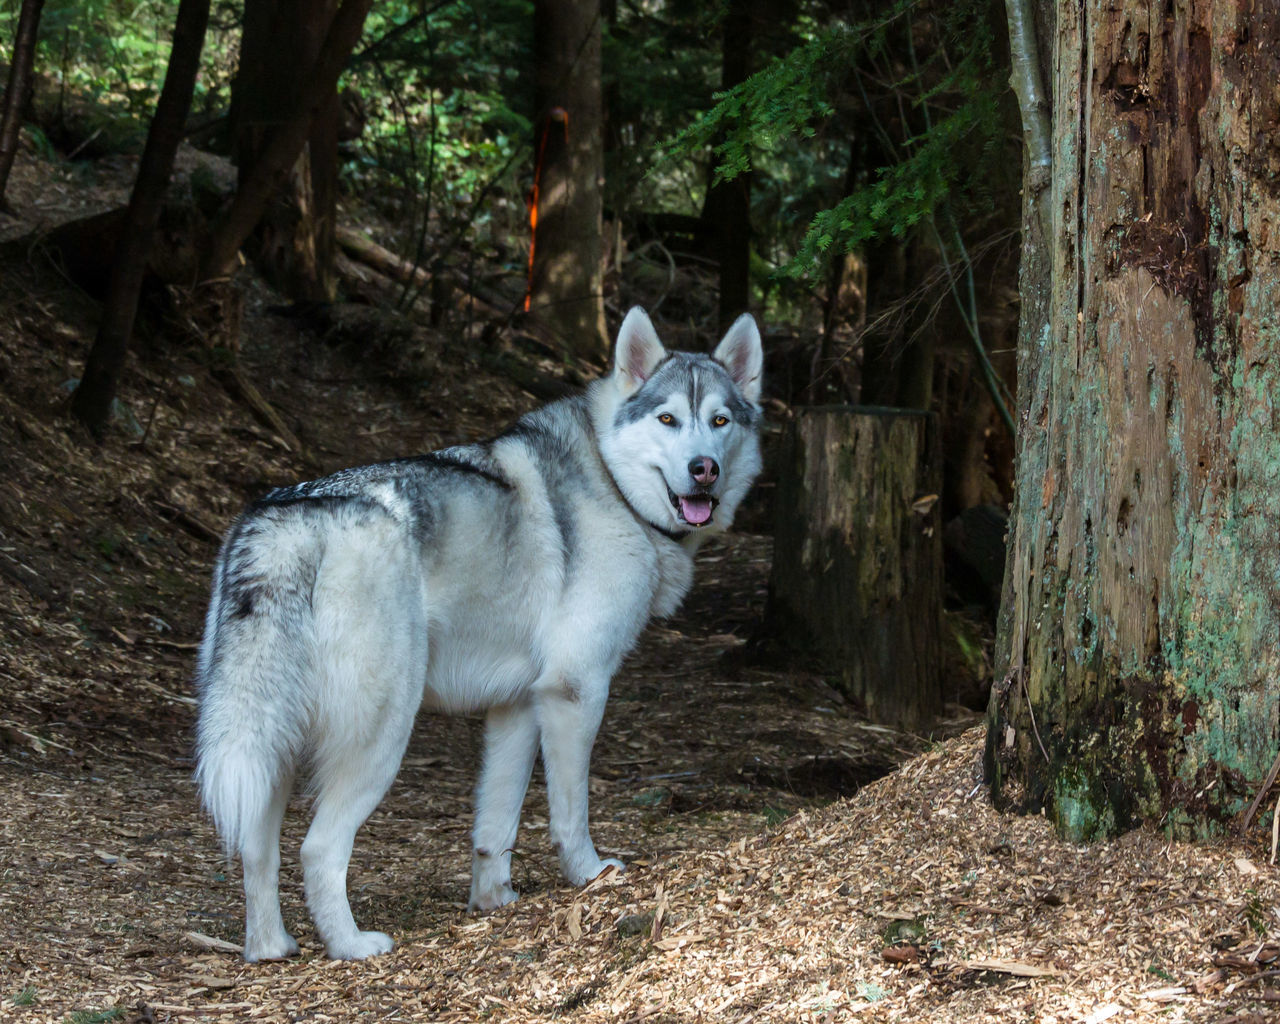 animal themes, one animal, domestic animals, mammal, pets, dog, outdoors, looking at camera, portrait, no people, day, nature